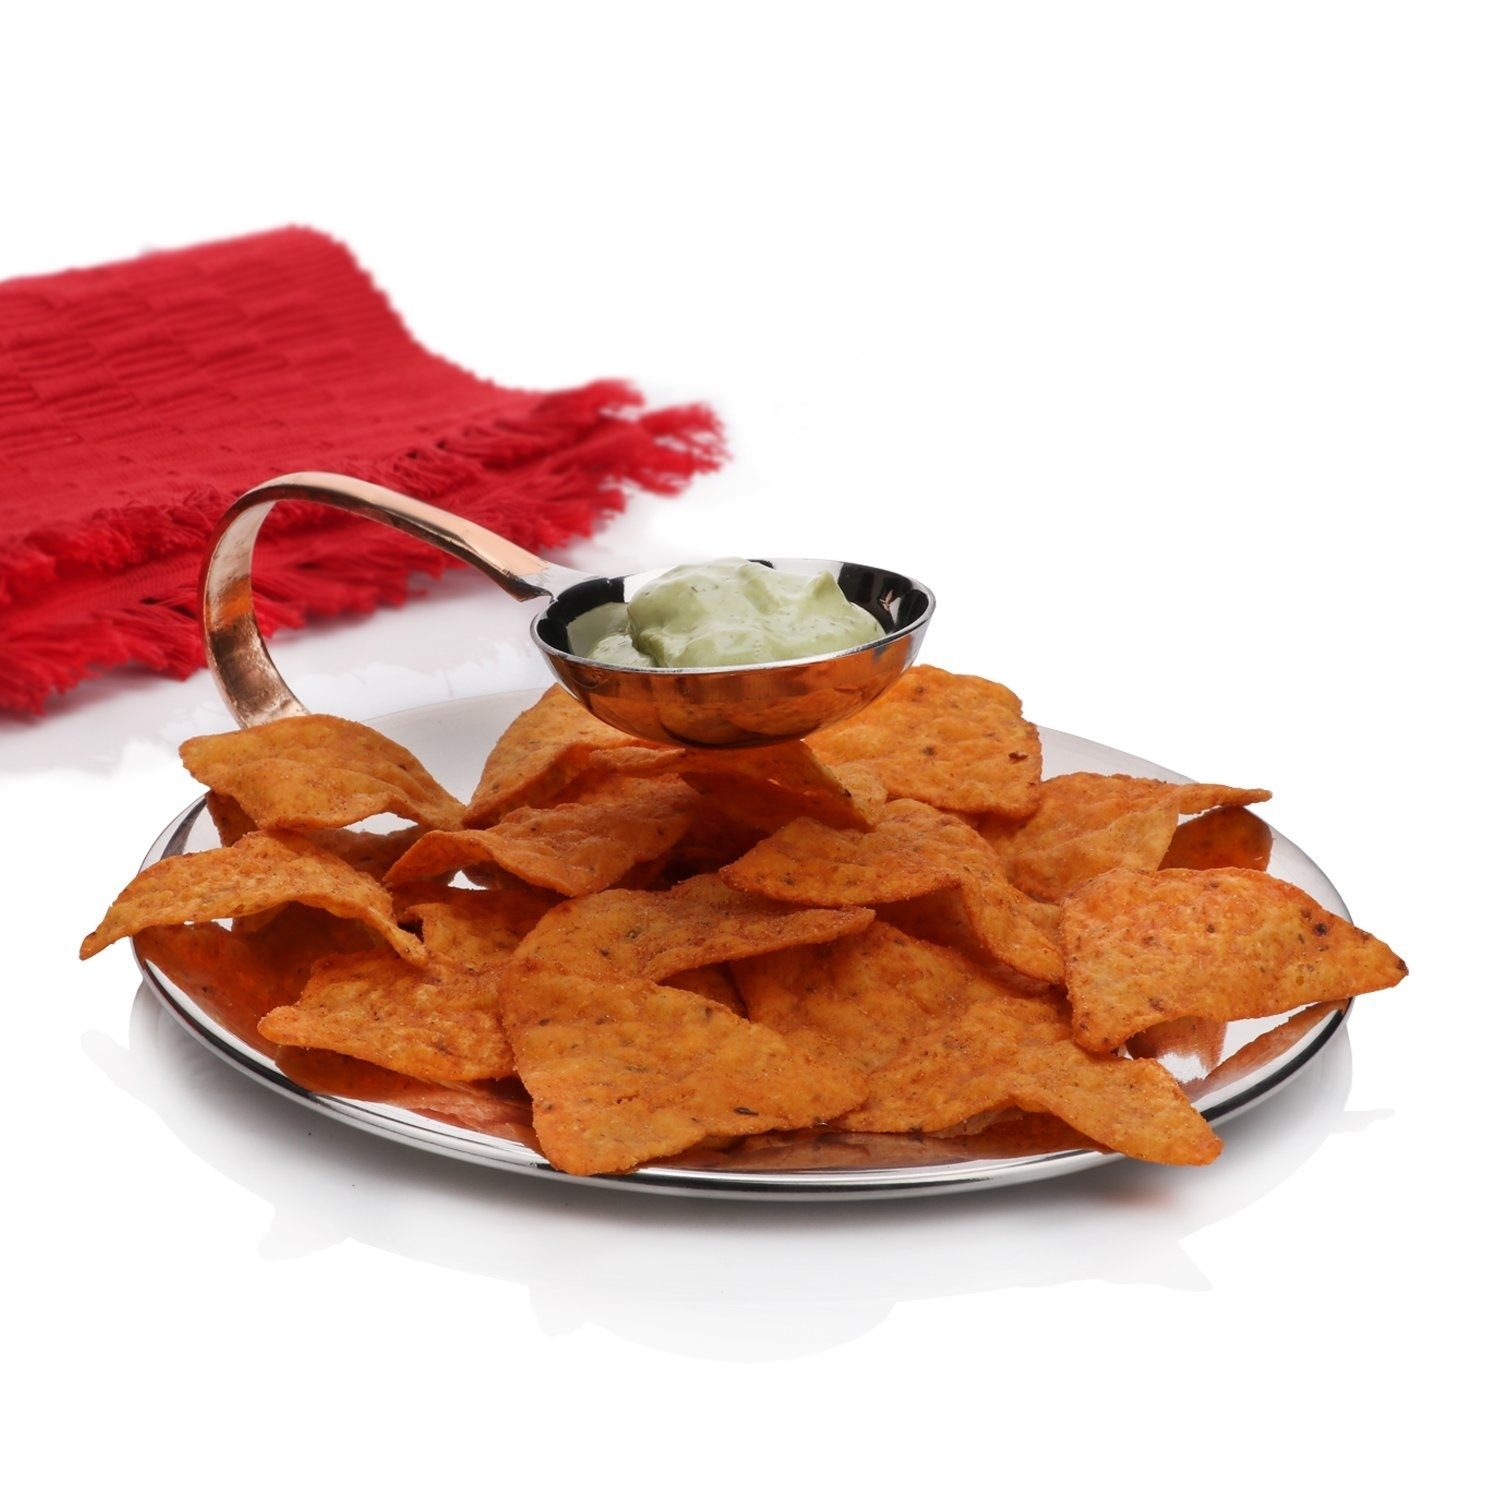 A plate full of nacho chips, with dip hanging above it in the small bowl.